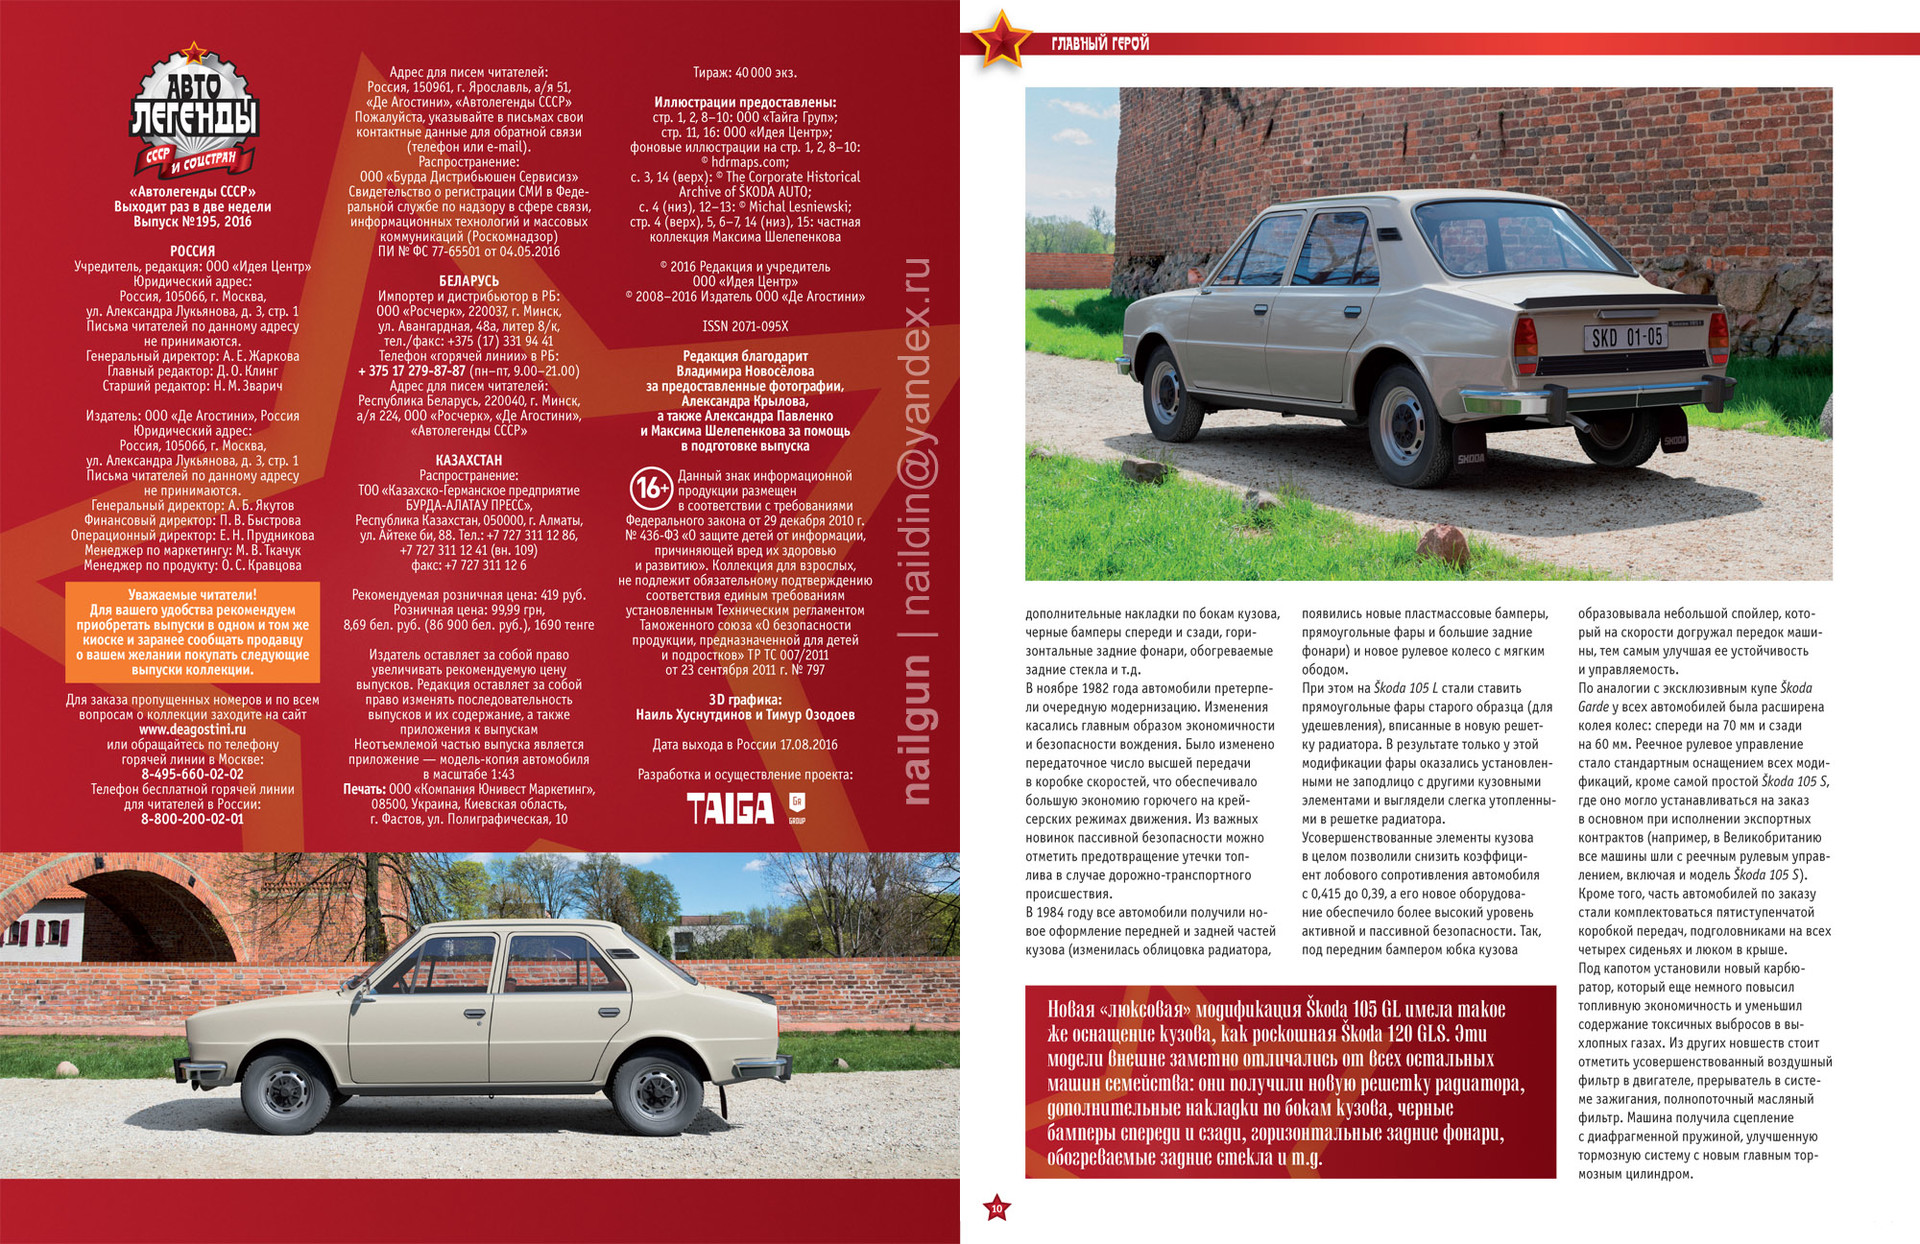 Nail khusnutdinov cars issue 195 hr 2